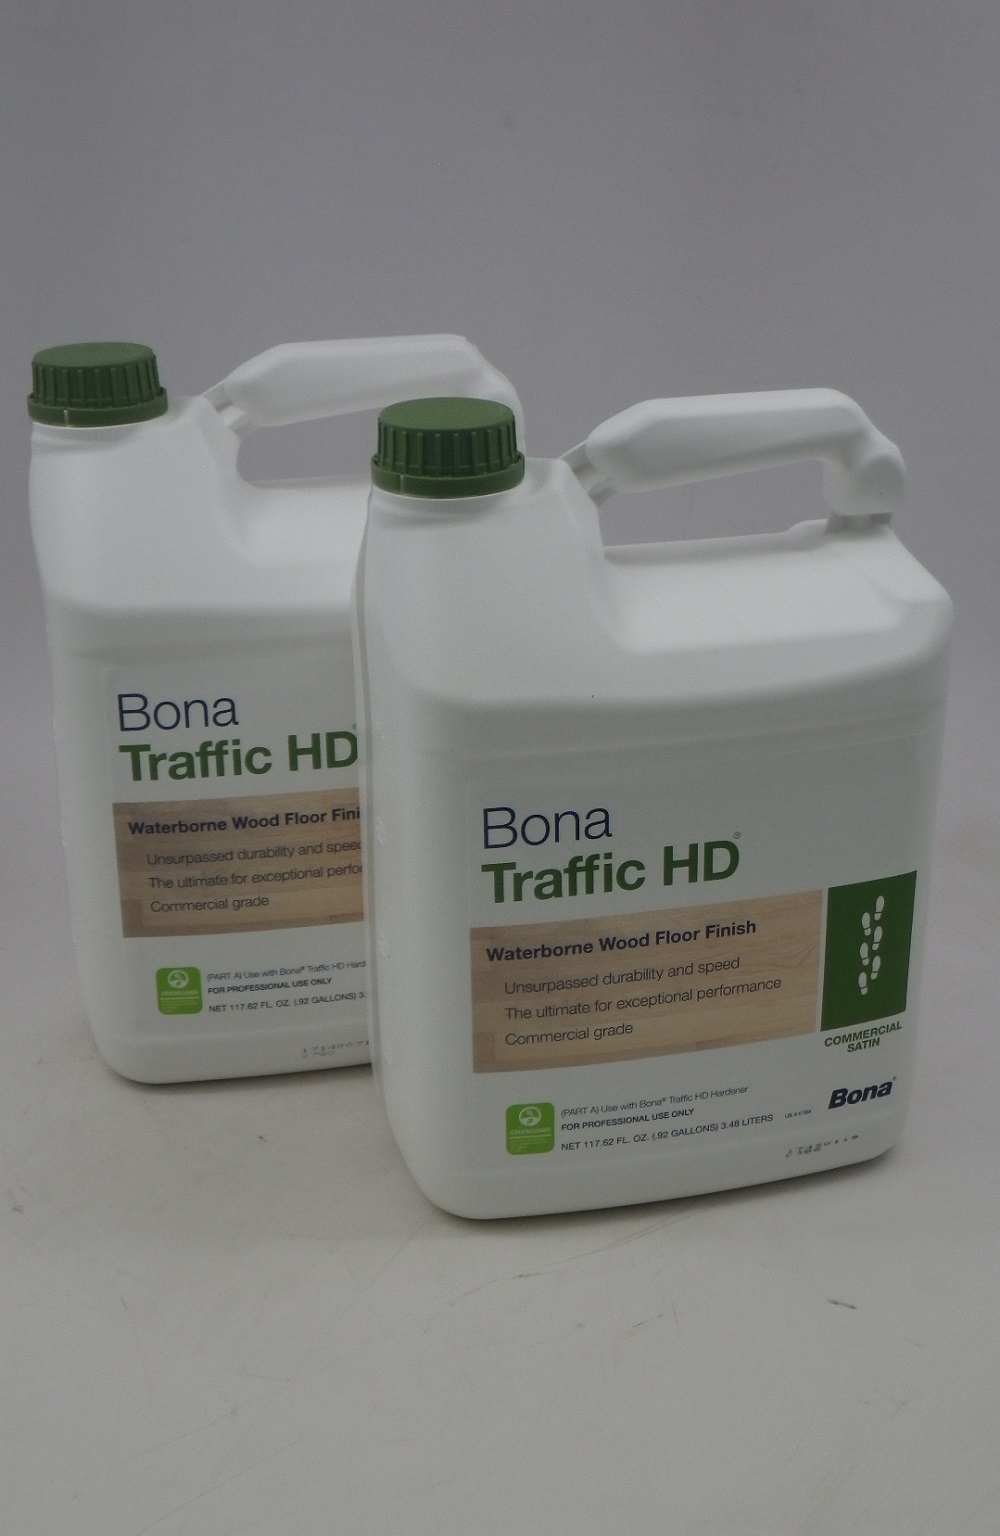 Bona Traffic HD Two Component Waterborne Wood Floor Finish